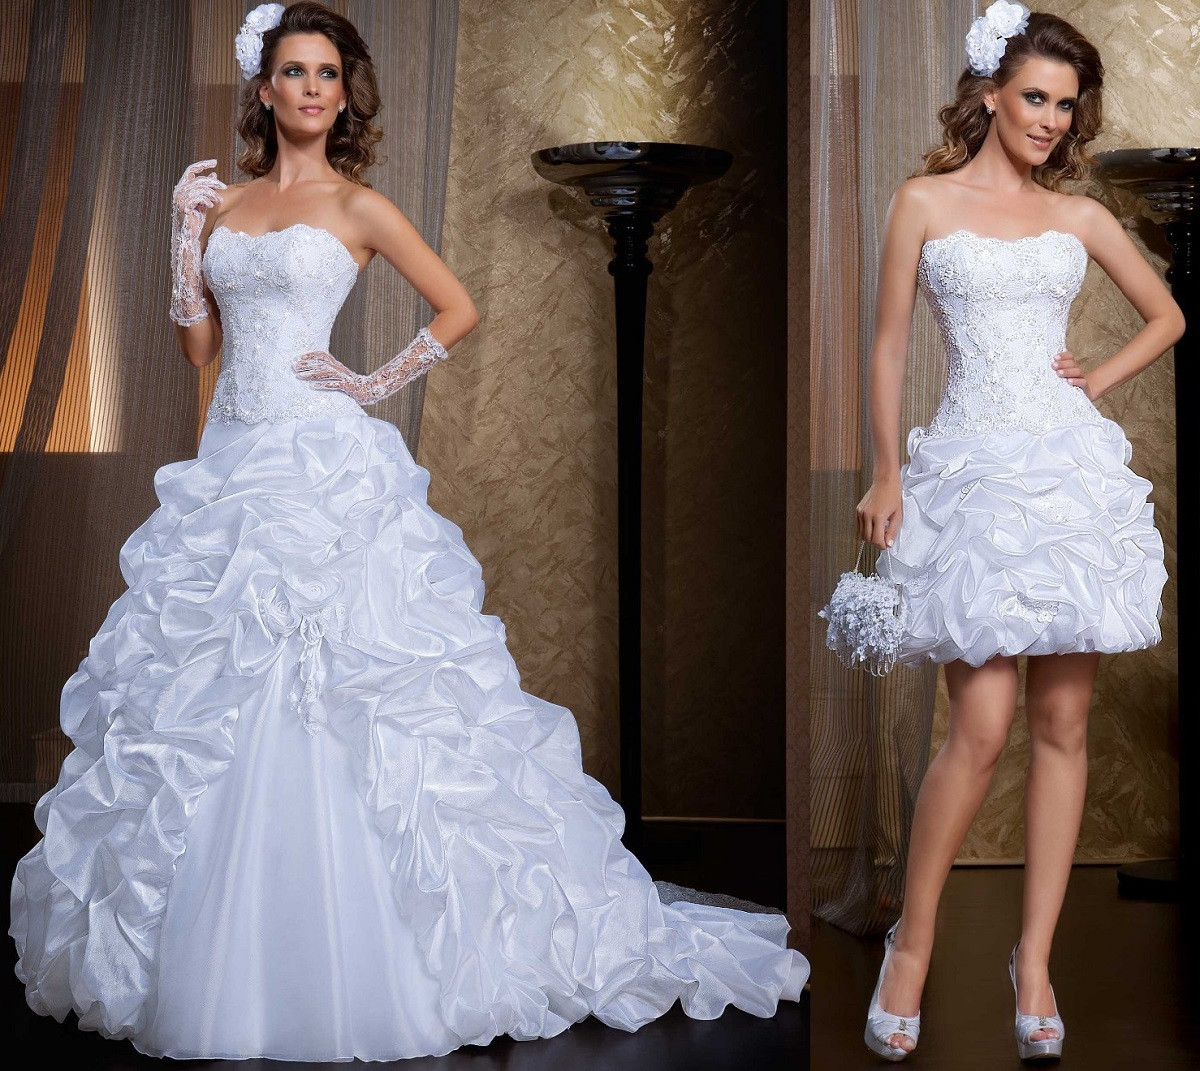 Ruffled Lace Strapless  two in one Wedding Dresses with Removable Skirt